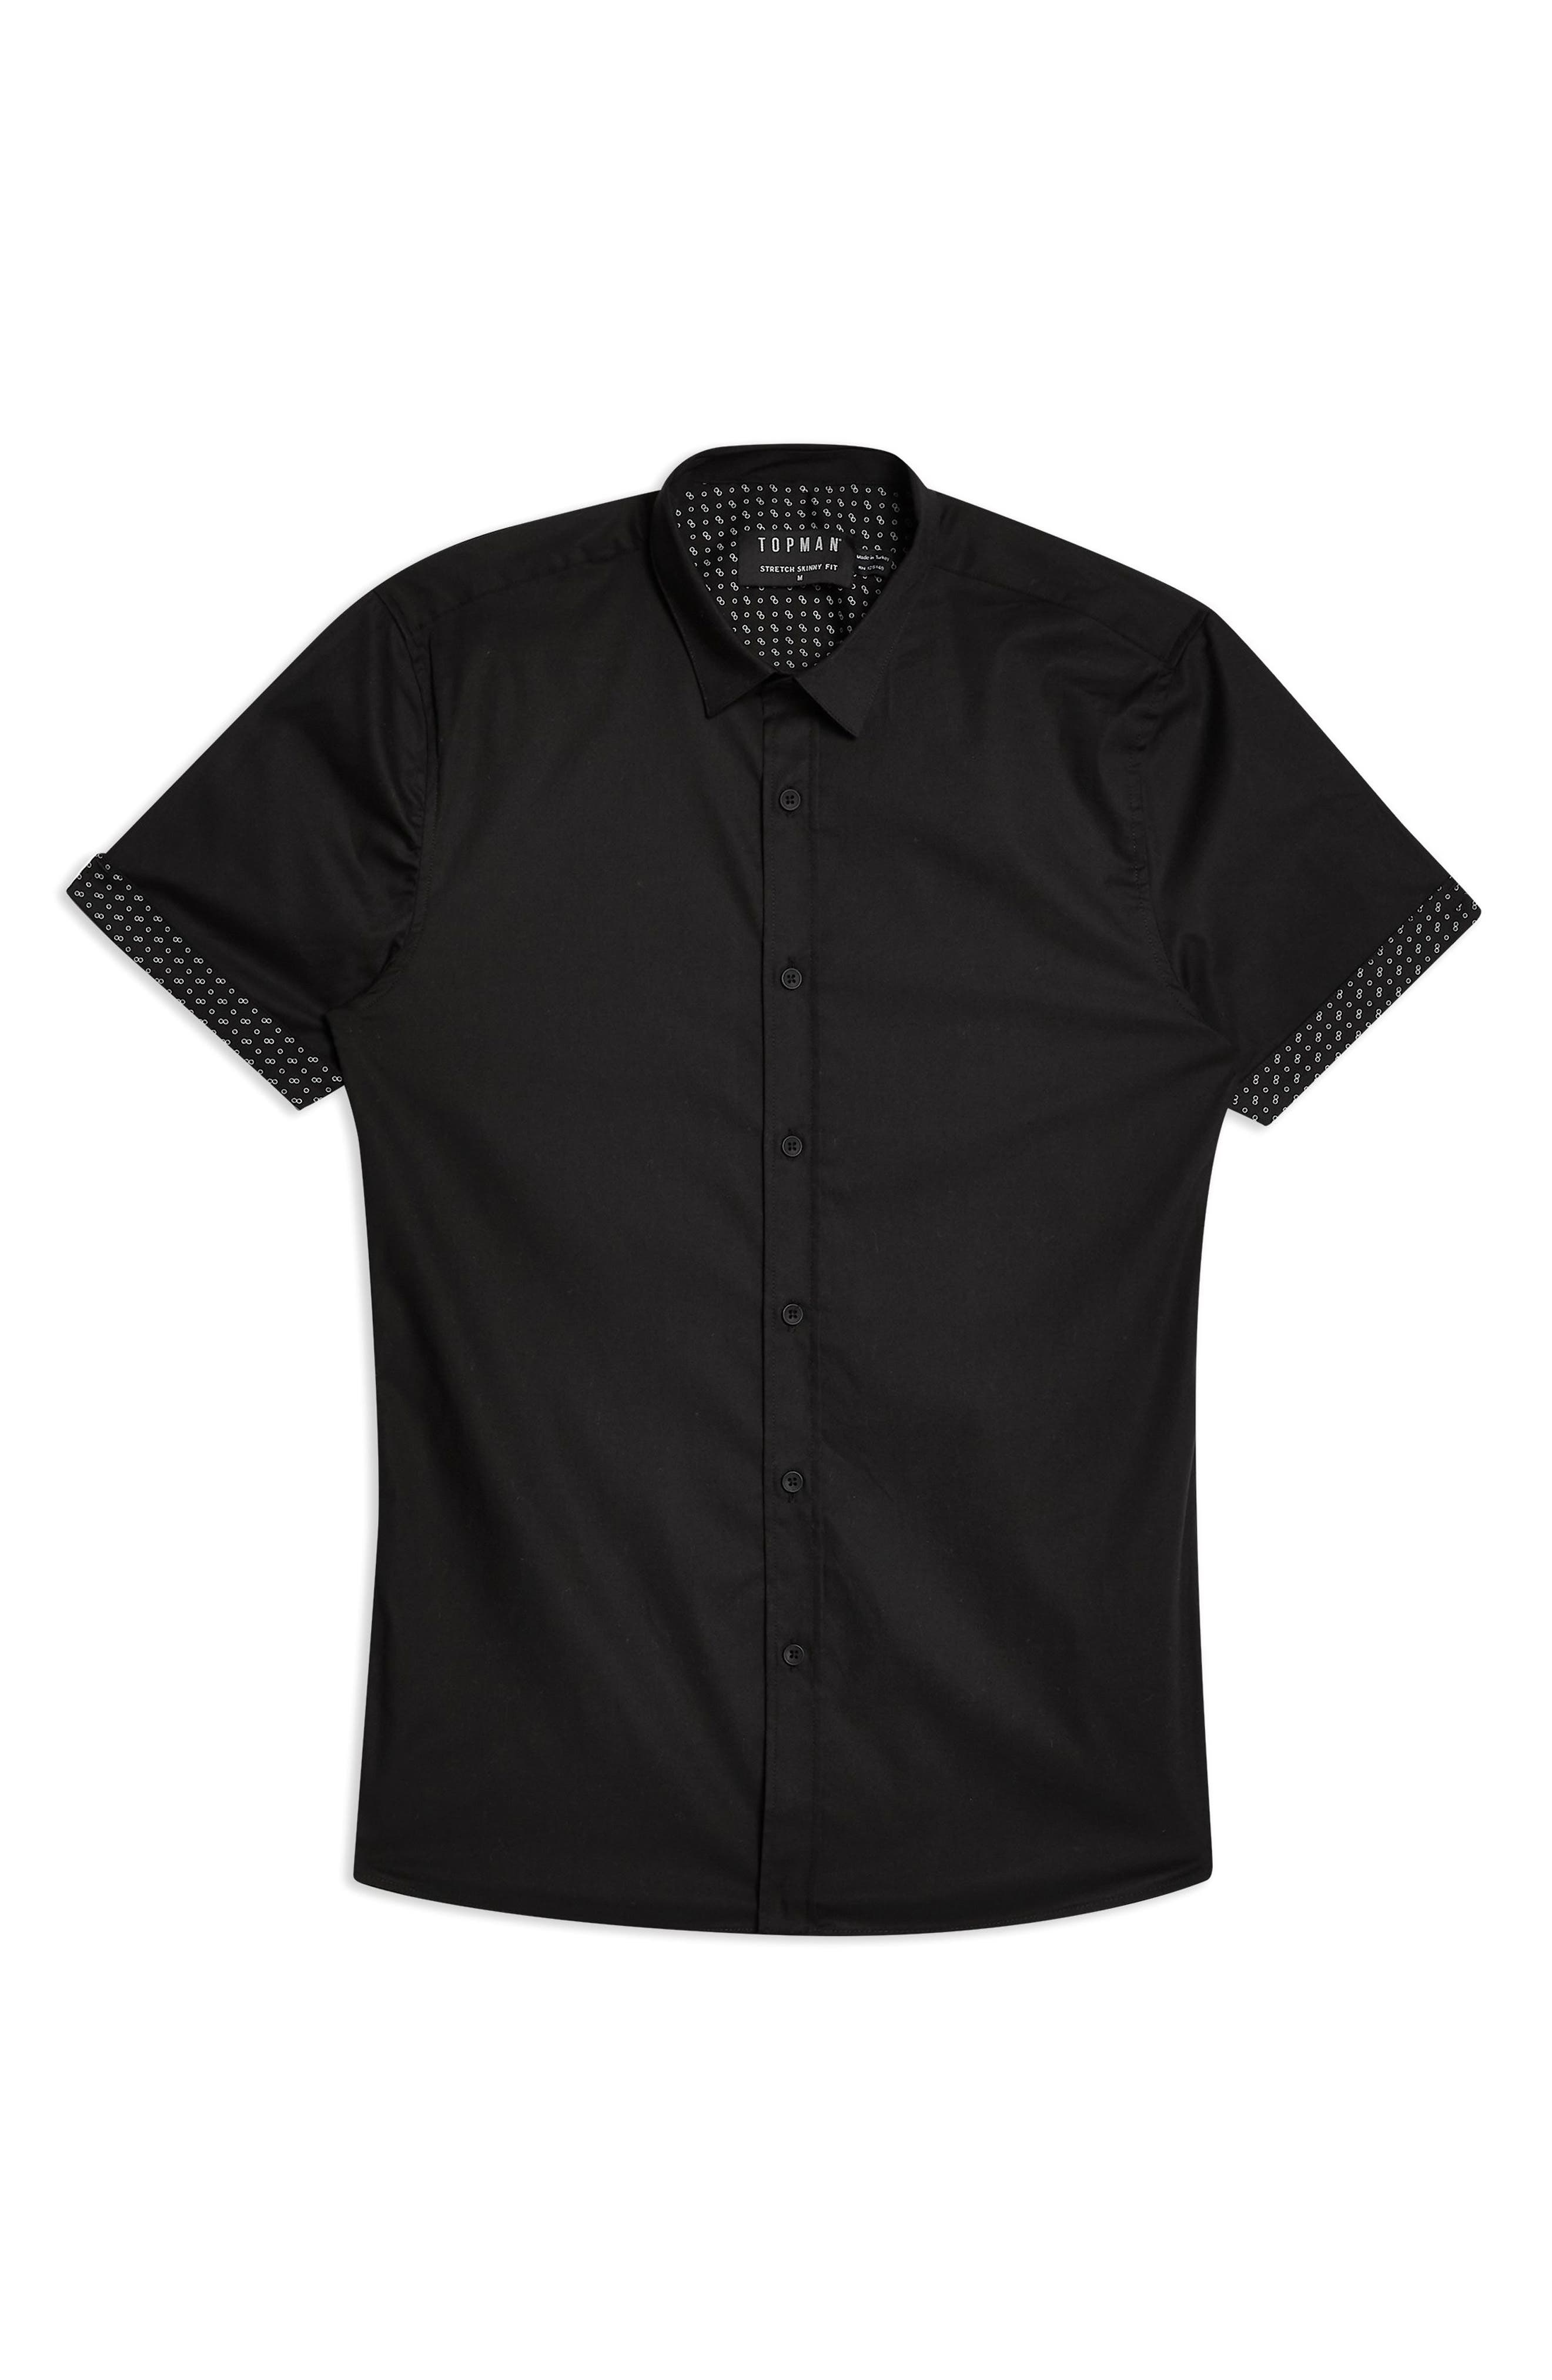 TOPMAN, Stretch Skinny Fit Shirt, Alternate thumbnail 4, color, 001